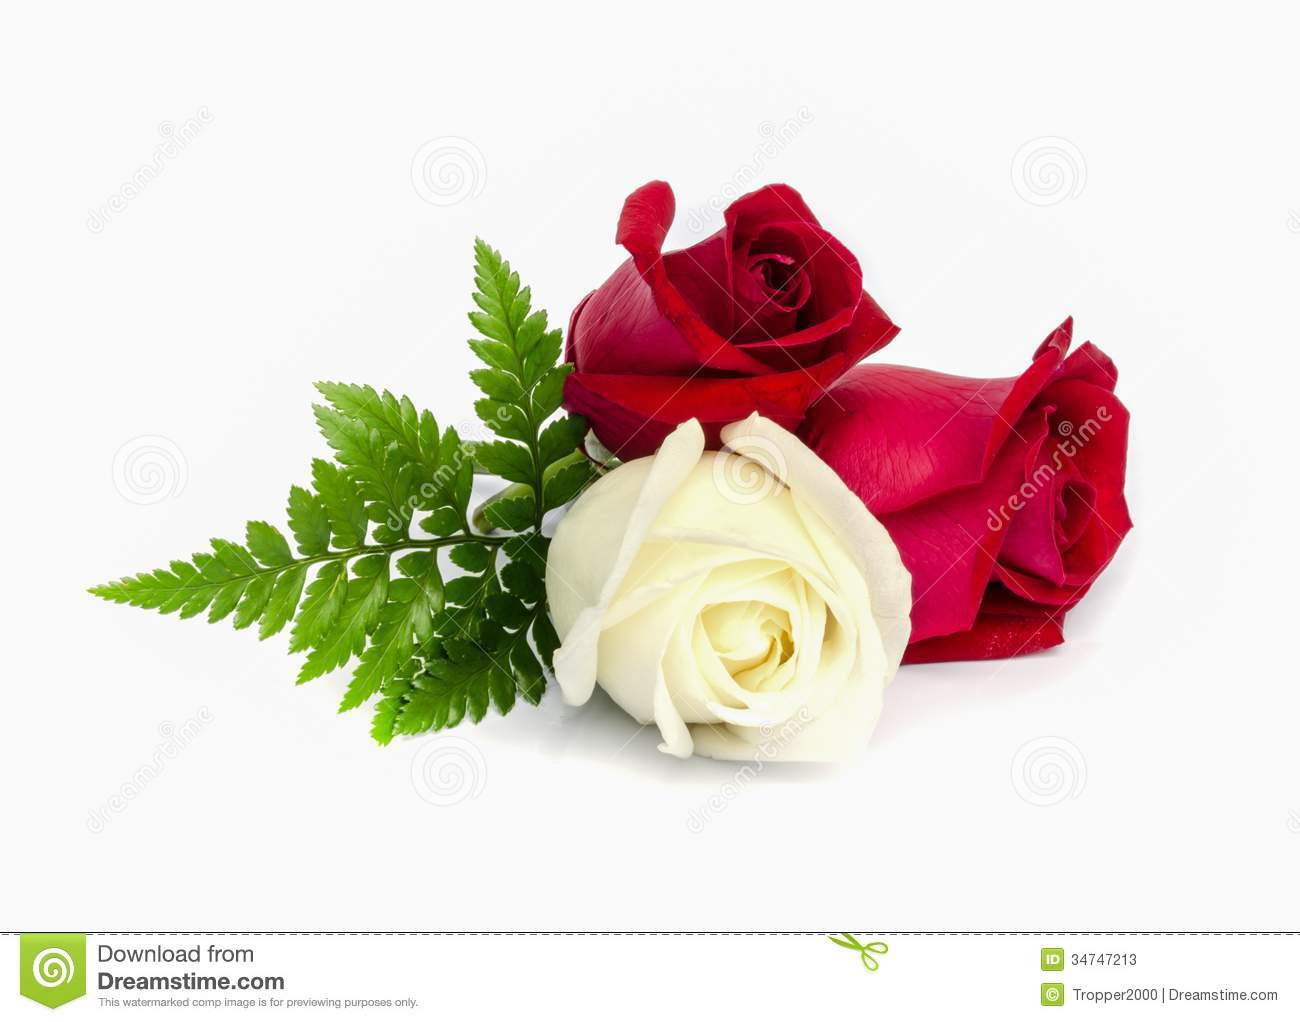 Beautiful red and white rose on white background.